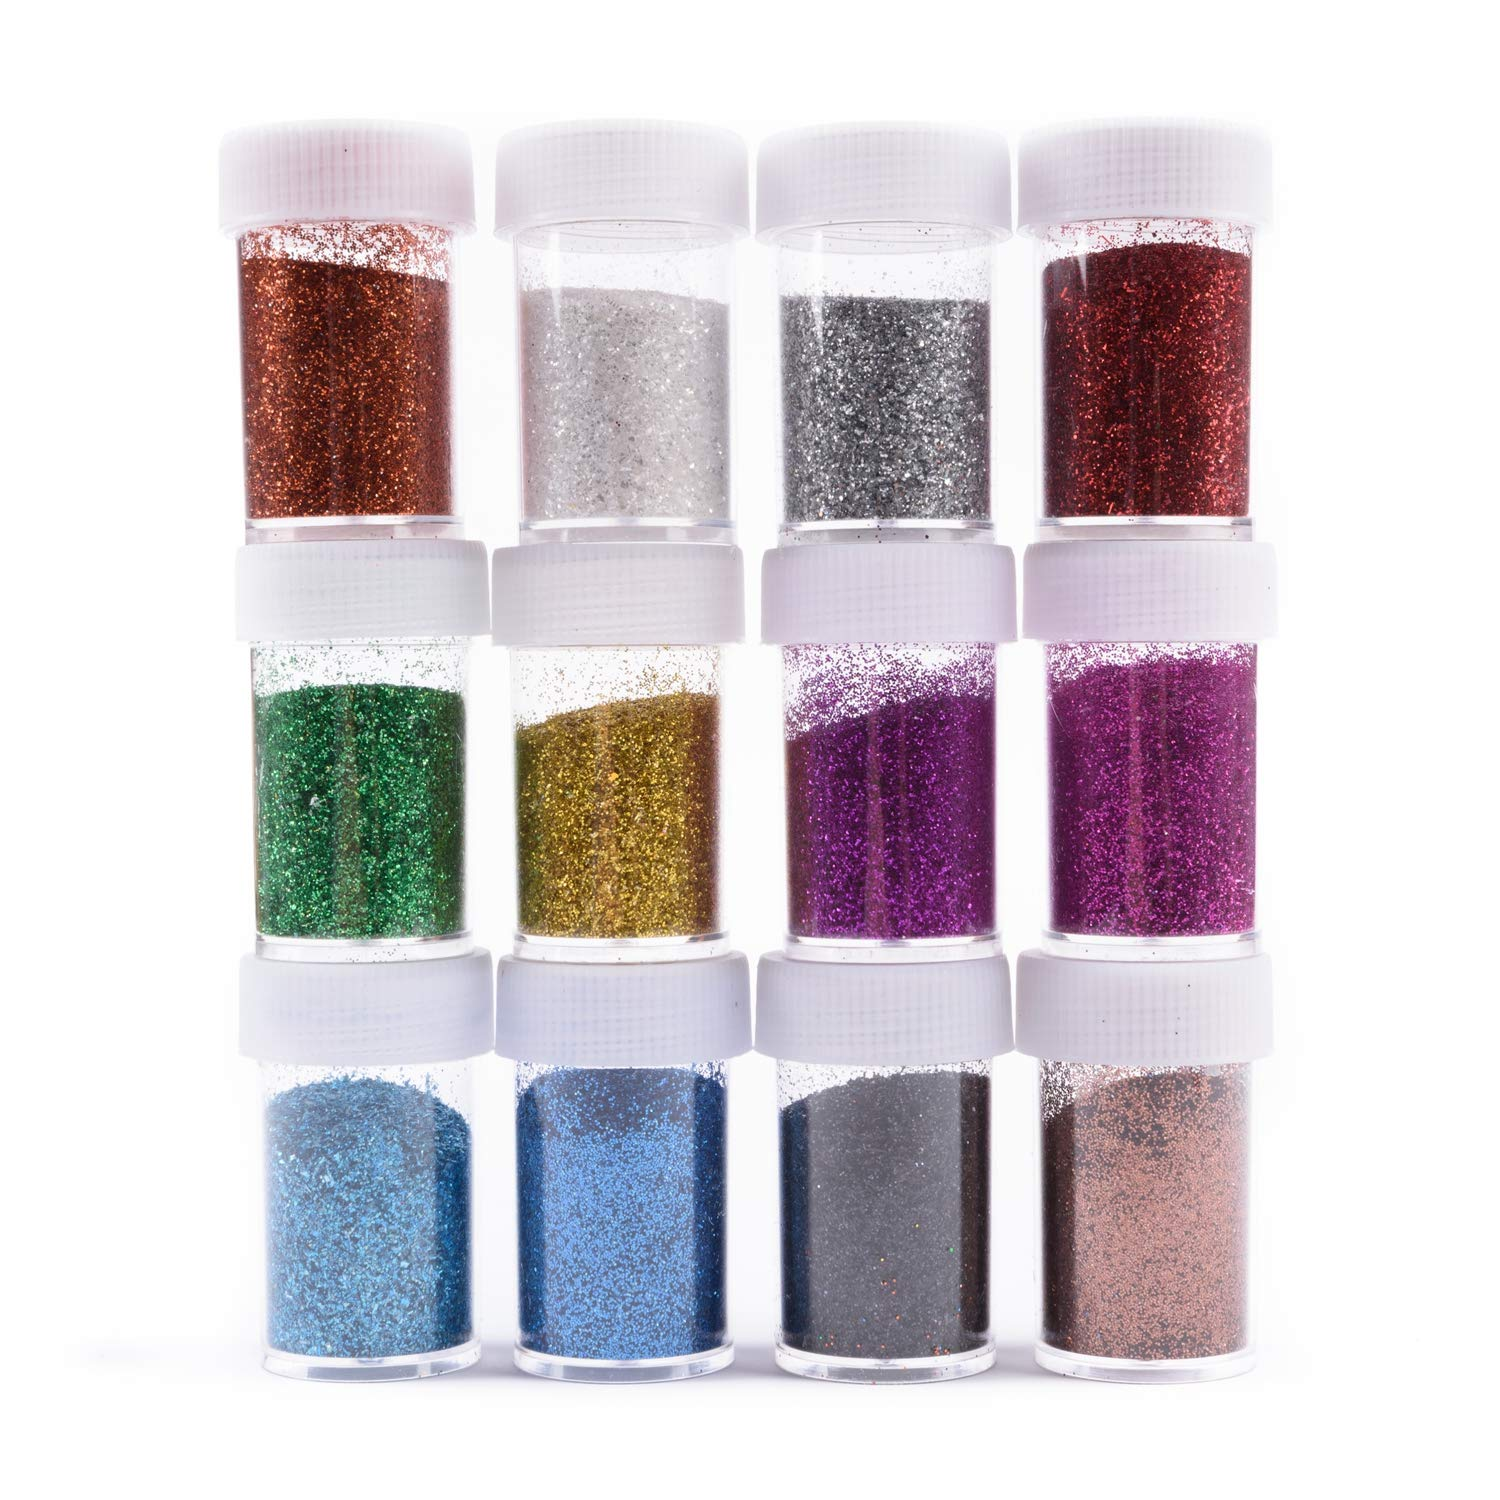 Allwon Glitter Powder Sequins Loose Eyeshadow Glitter Powder Shakers for Slime Scrapbooking Face Body Nail Art Holiday Crafts (12 Boxes)